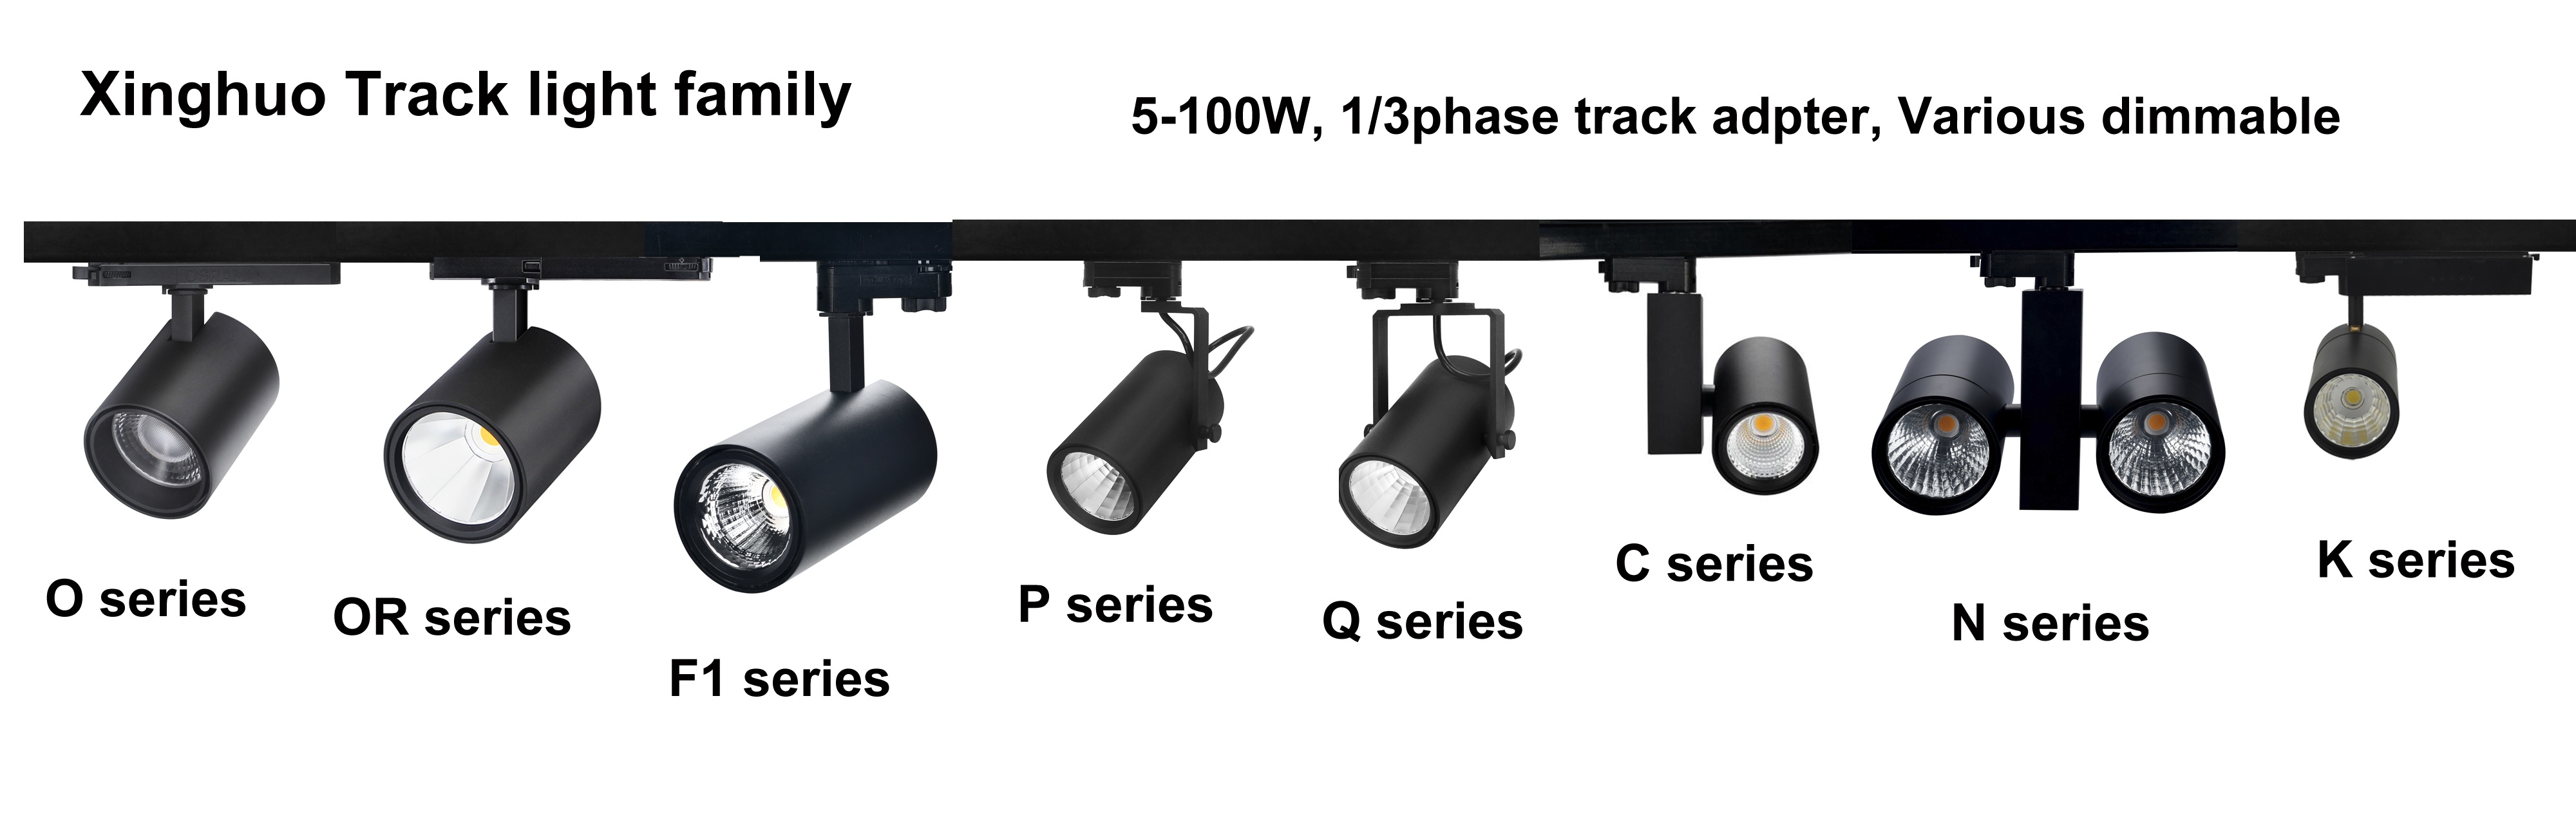 LED tracklight family